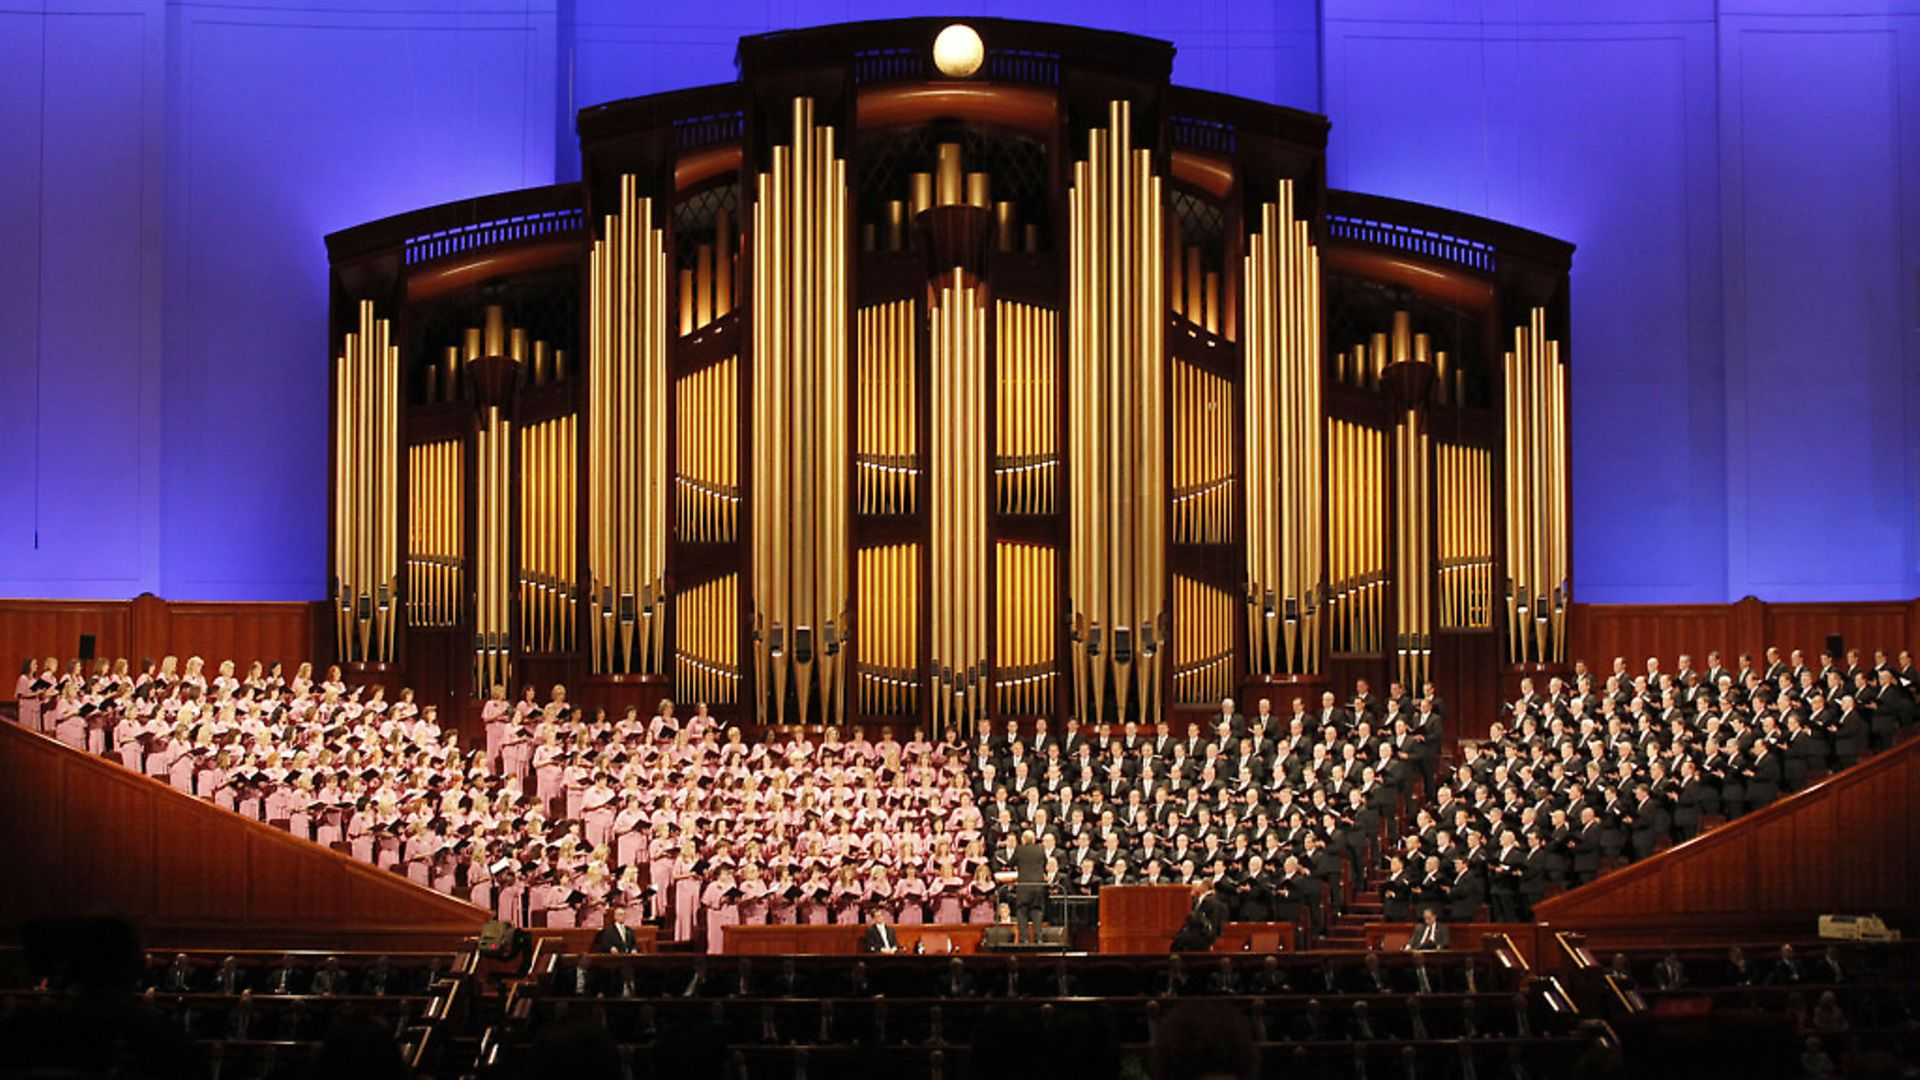 UNIQUE: The world-renowned Mormon Tabernacle Choir perform in Salt Lake City. Photo: Getty Images - Credit: Getty Images